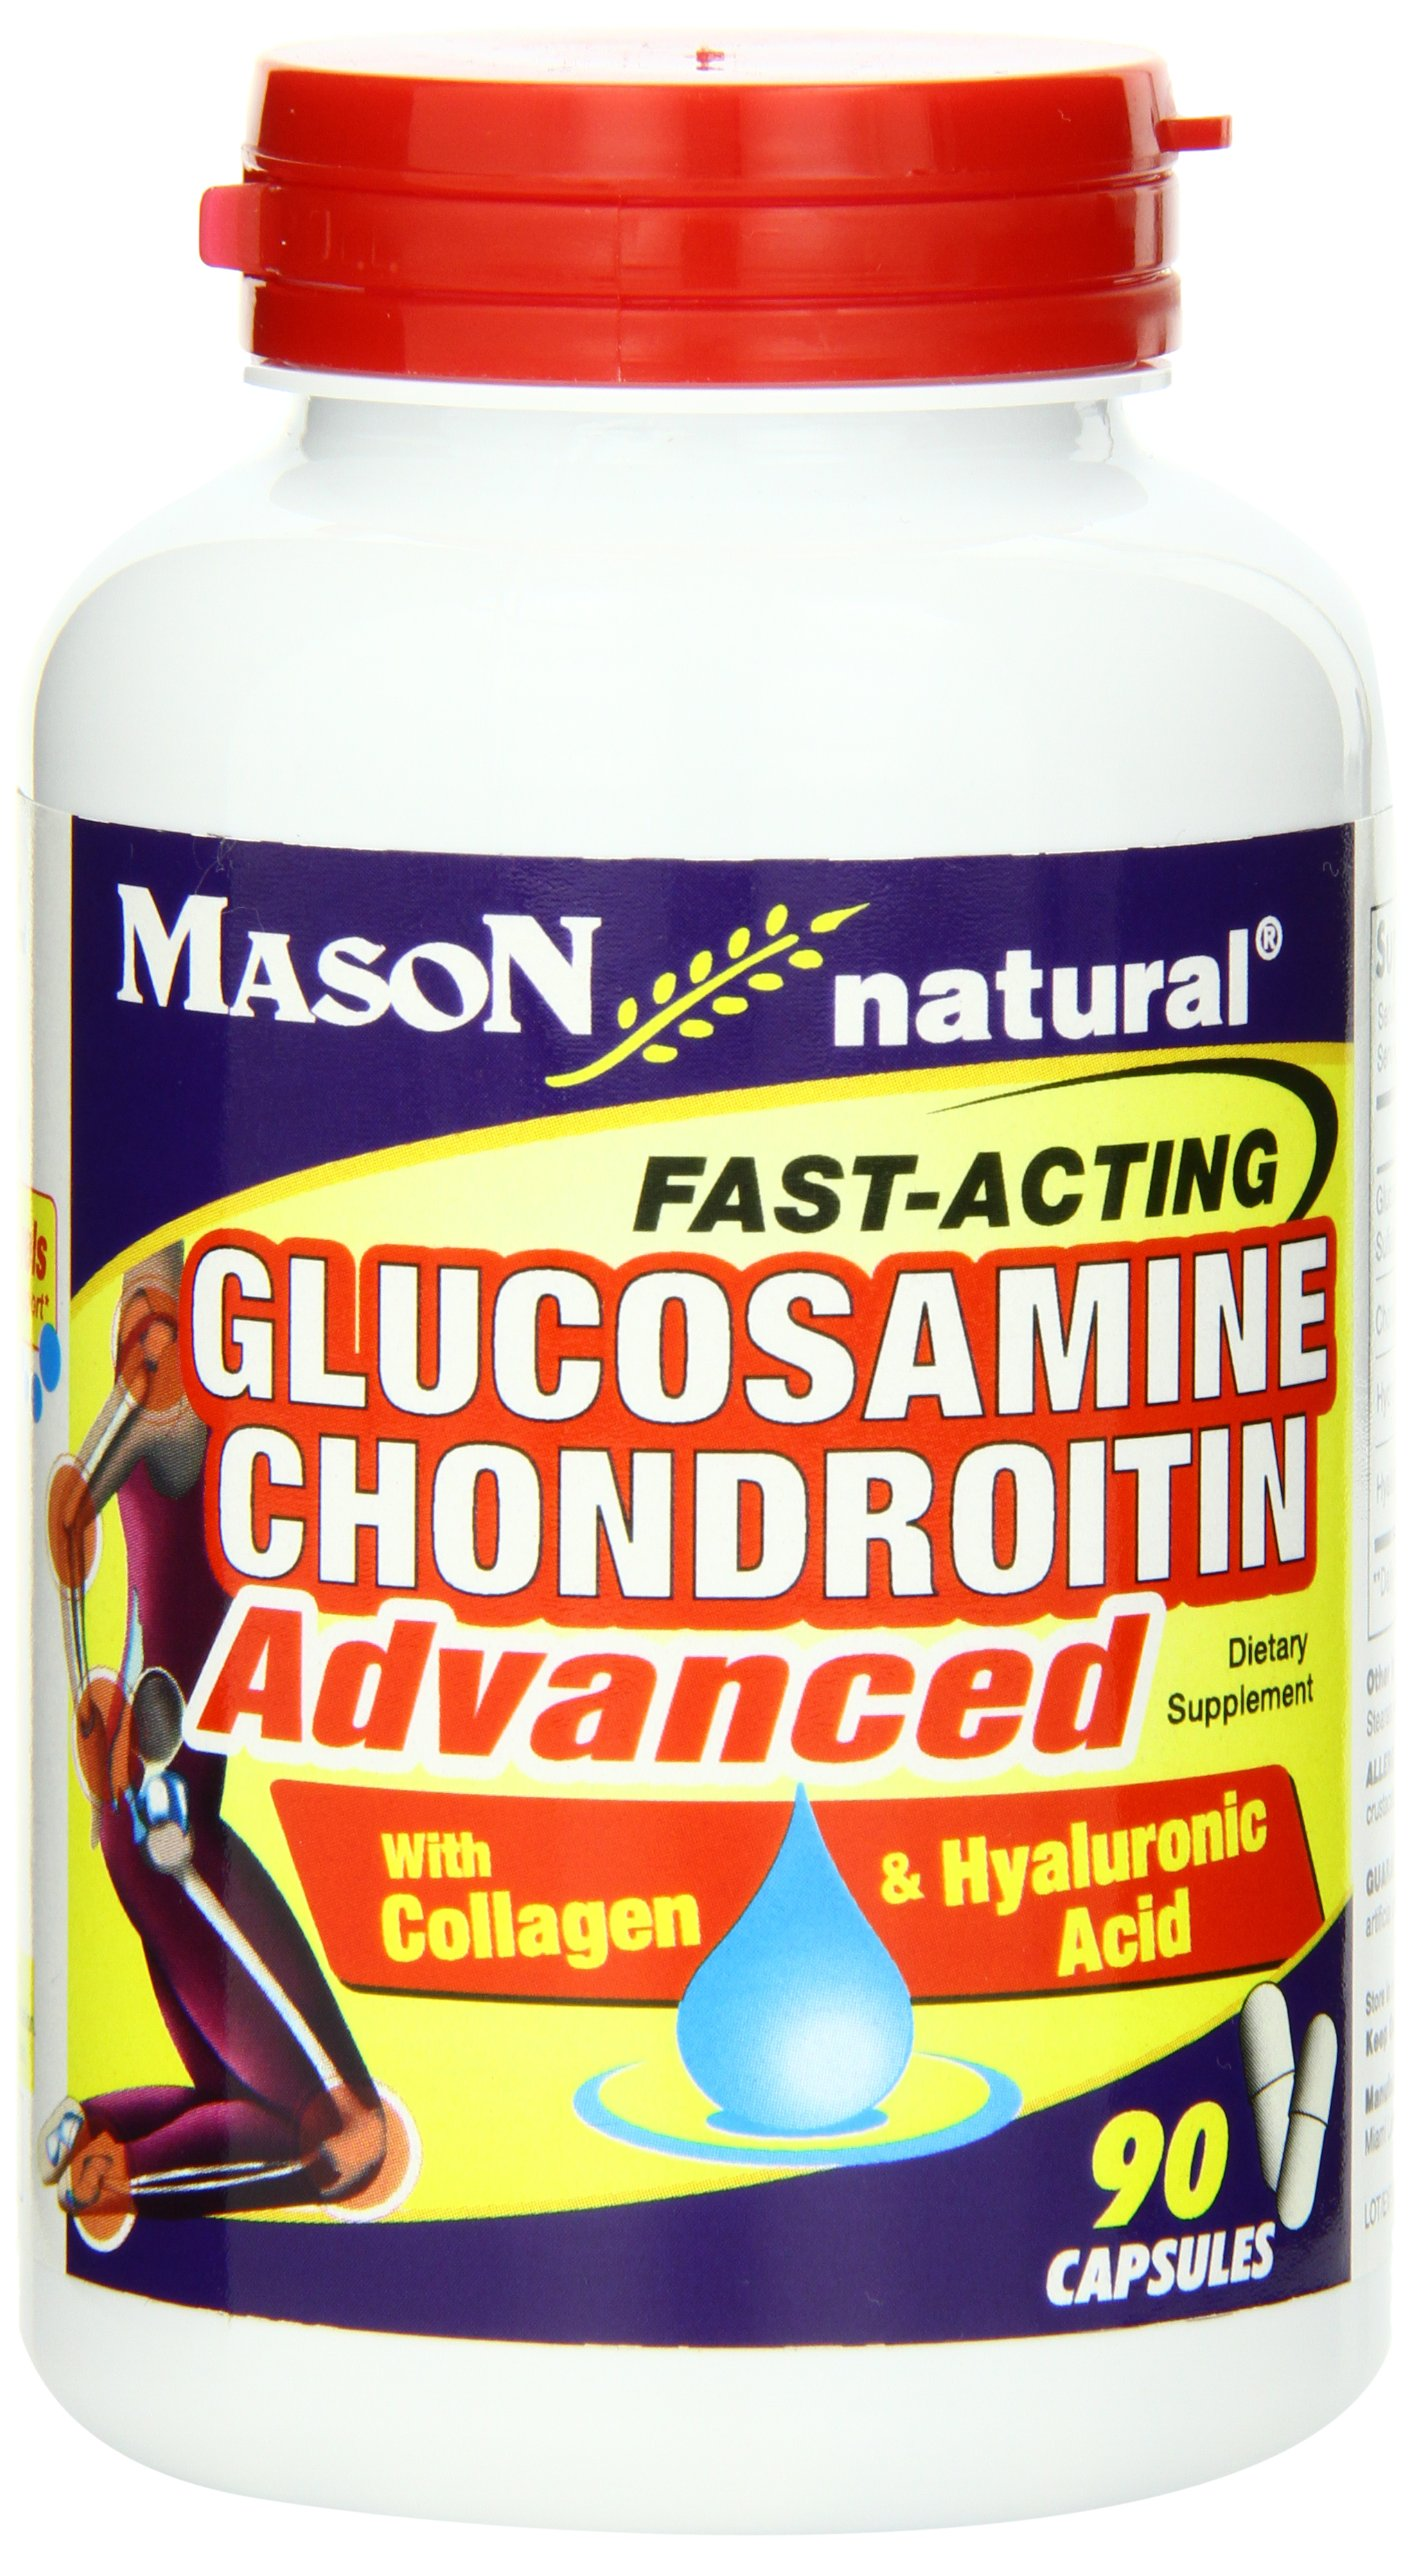 Mason Natural, Glucosamine Chondroitin, 90 Capsules, Dietary Supplement Supports Joint, Bone, and Cartilage Health, Promotes Flexibility and Helps Provide Pain Relief for Stiff Joints